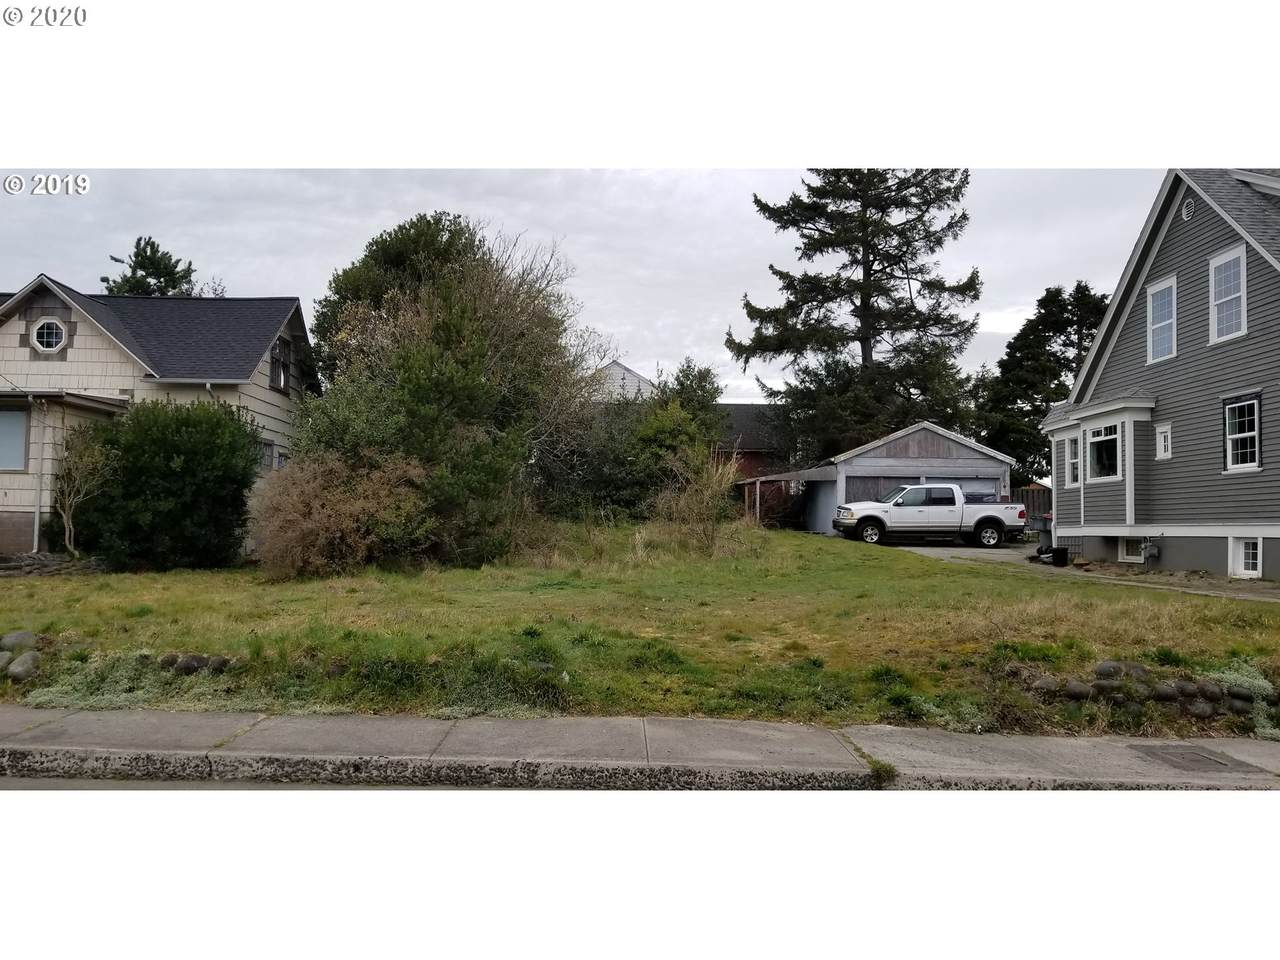 420 2nd Ave - Photo 1